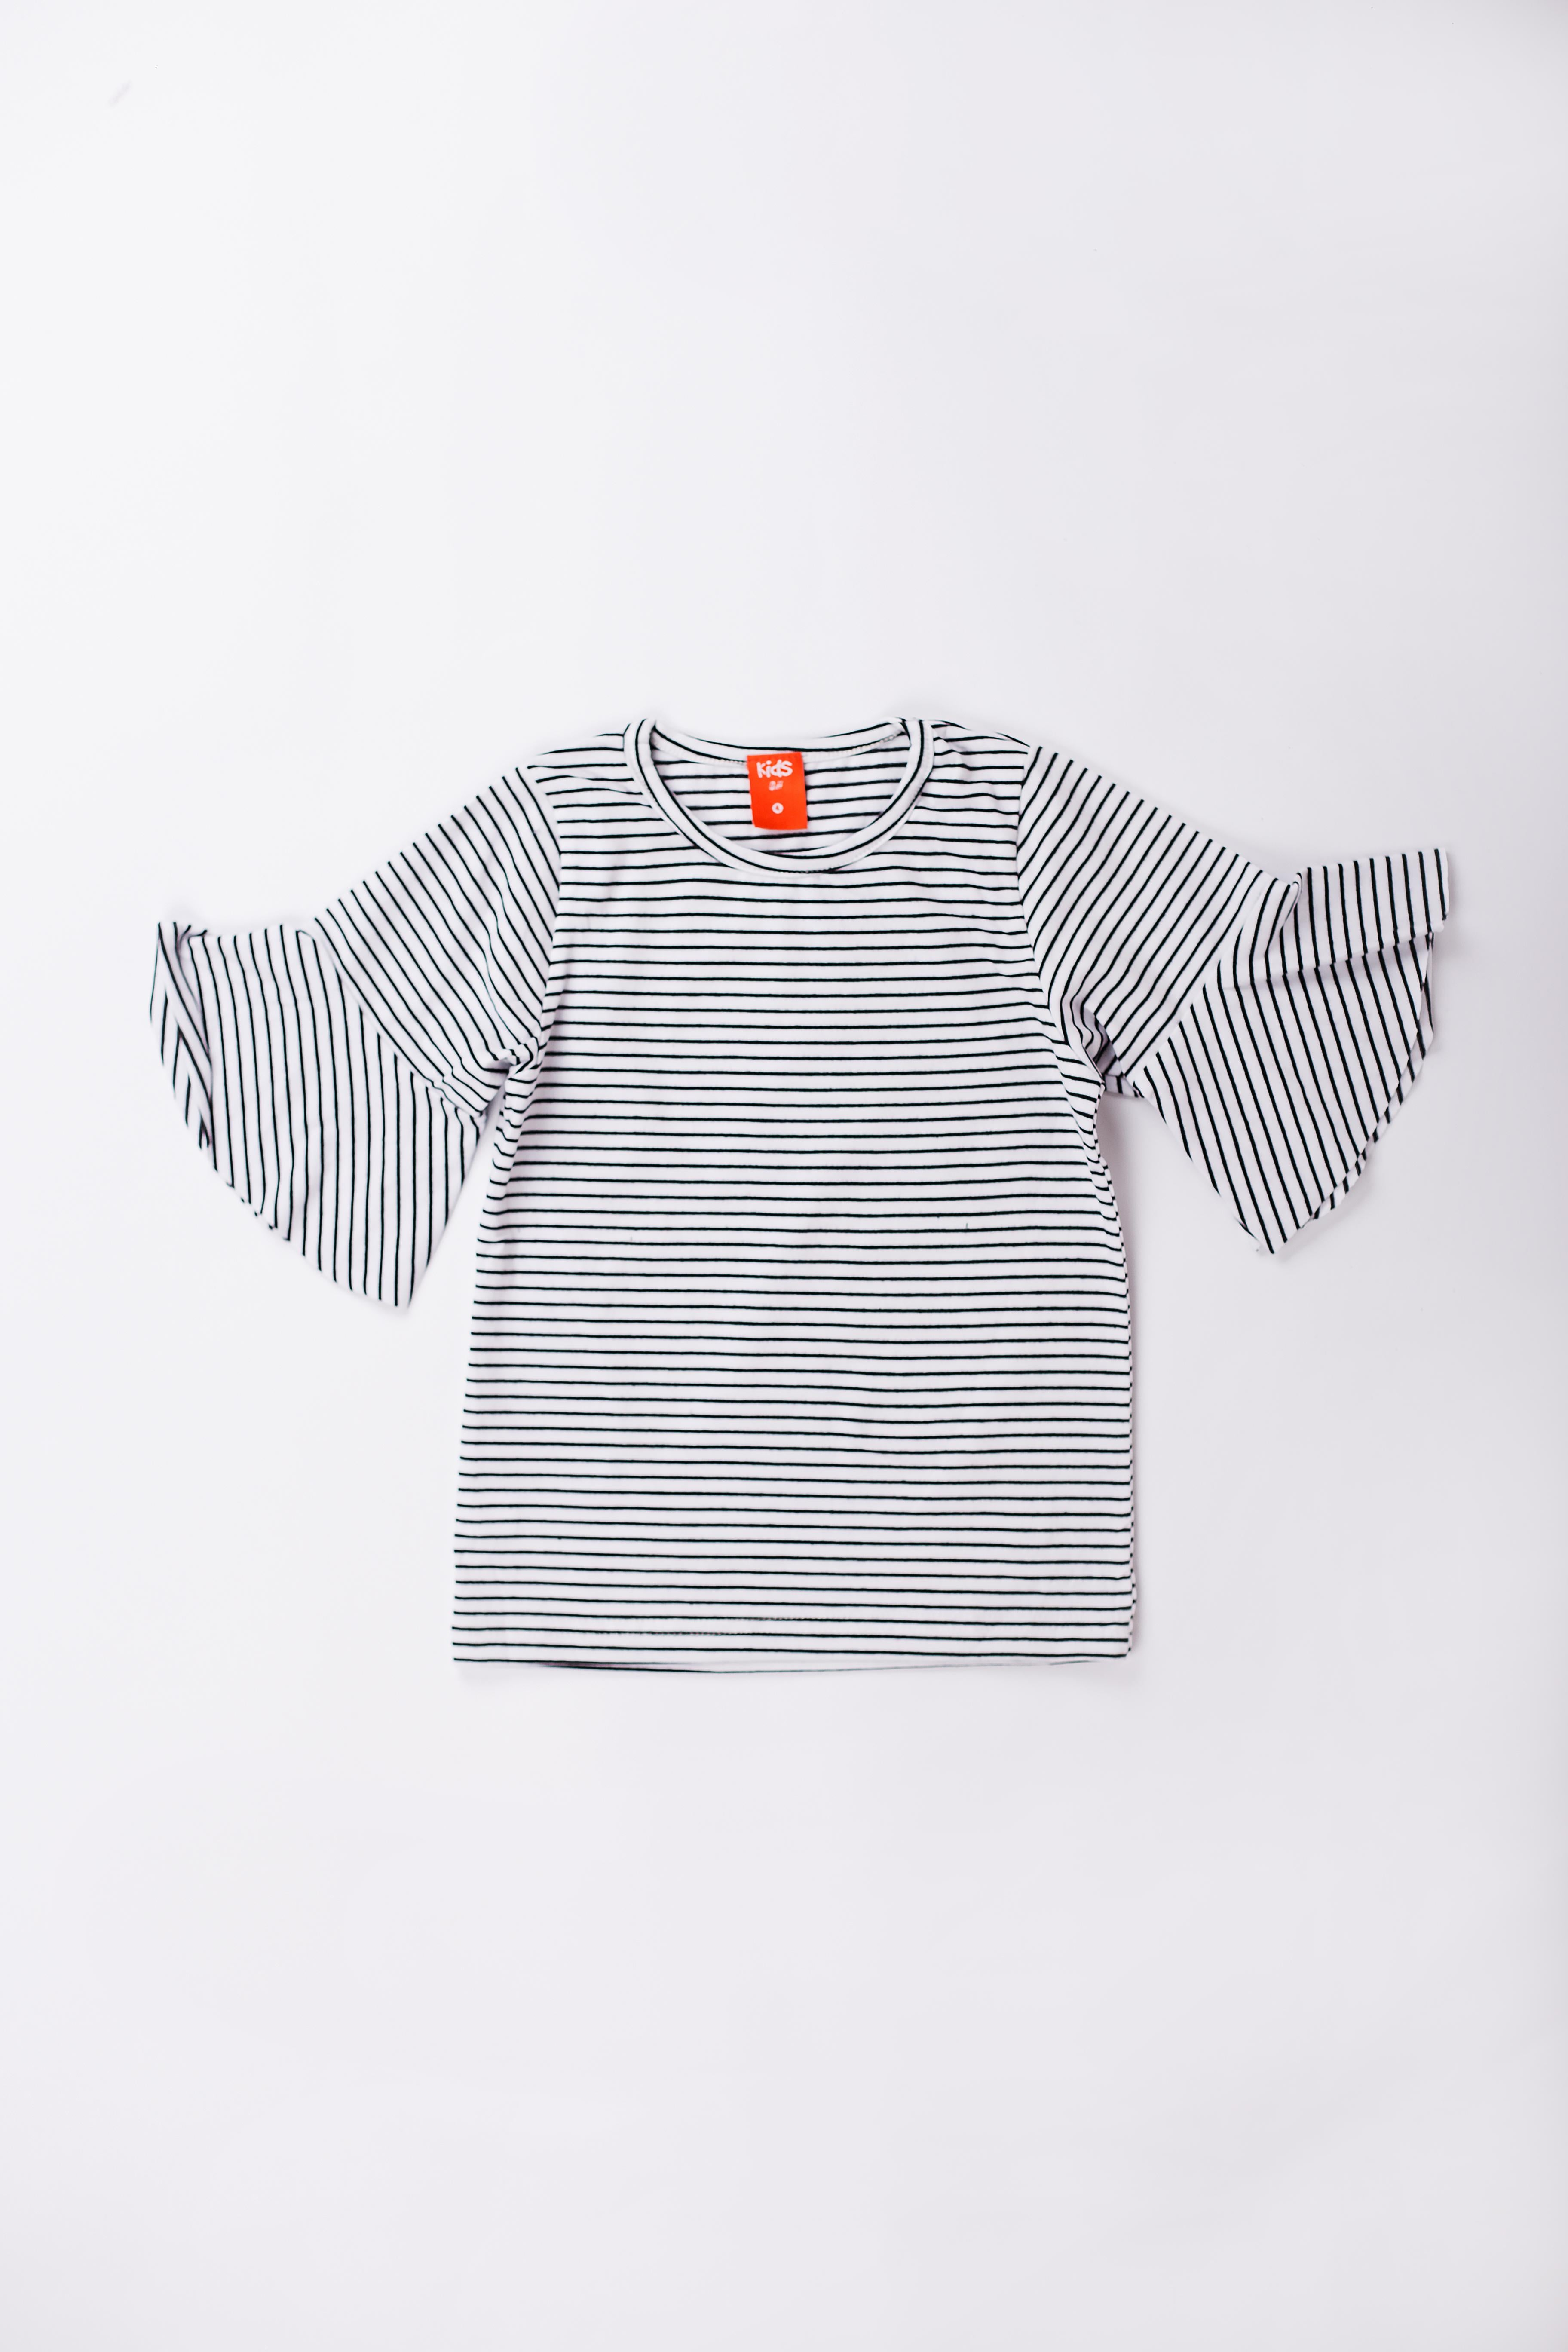 Yarn Dyed Striped T Shirt